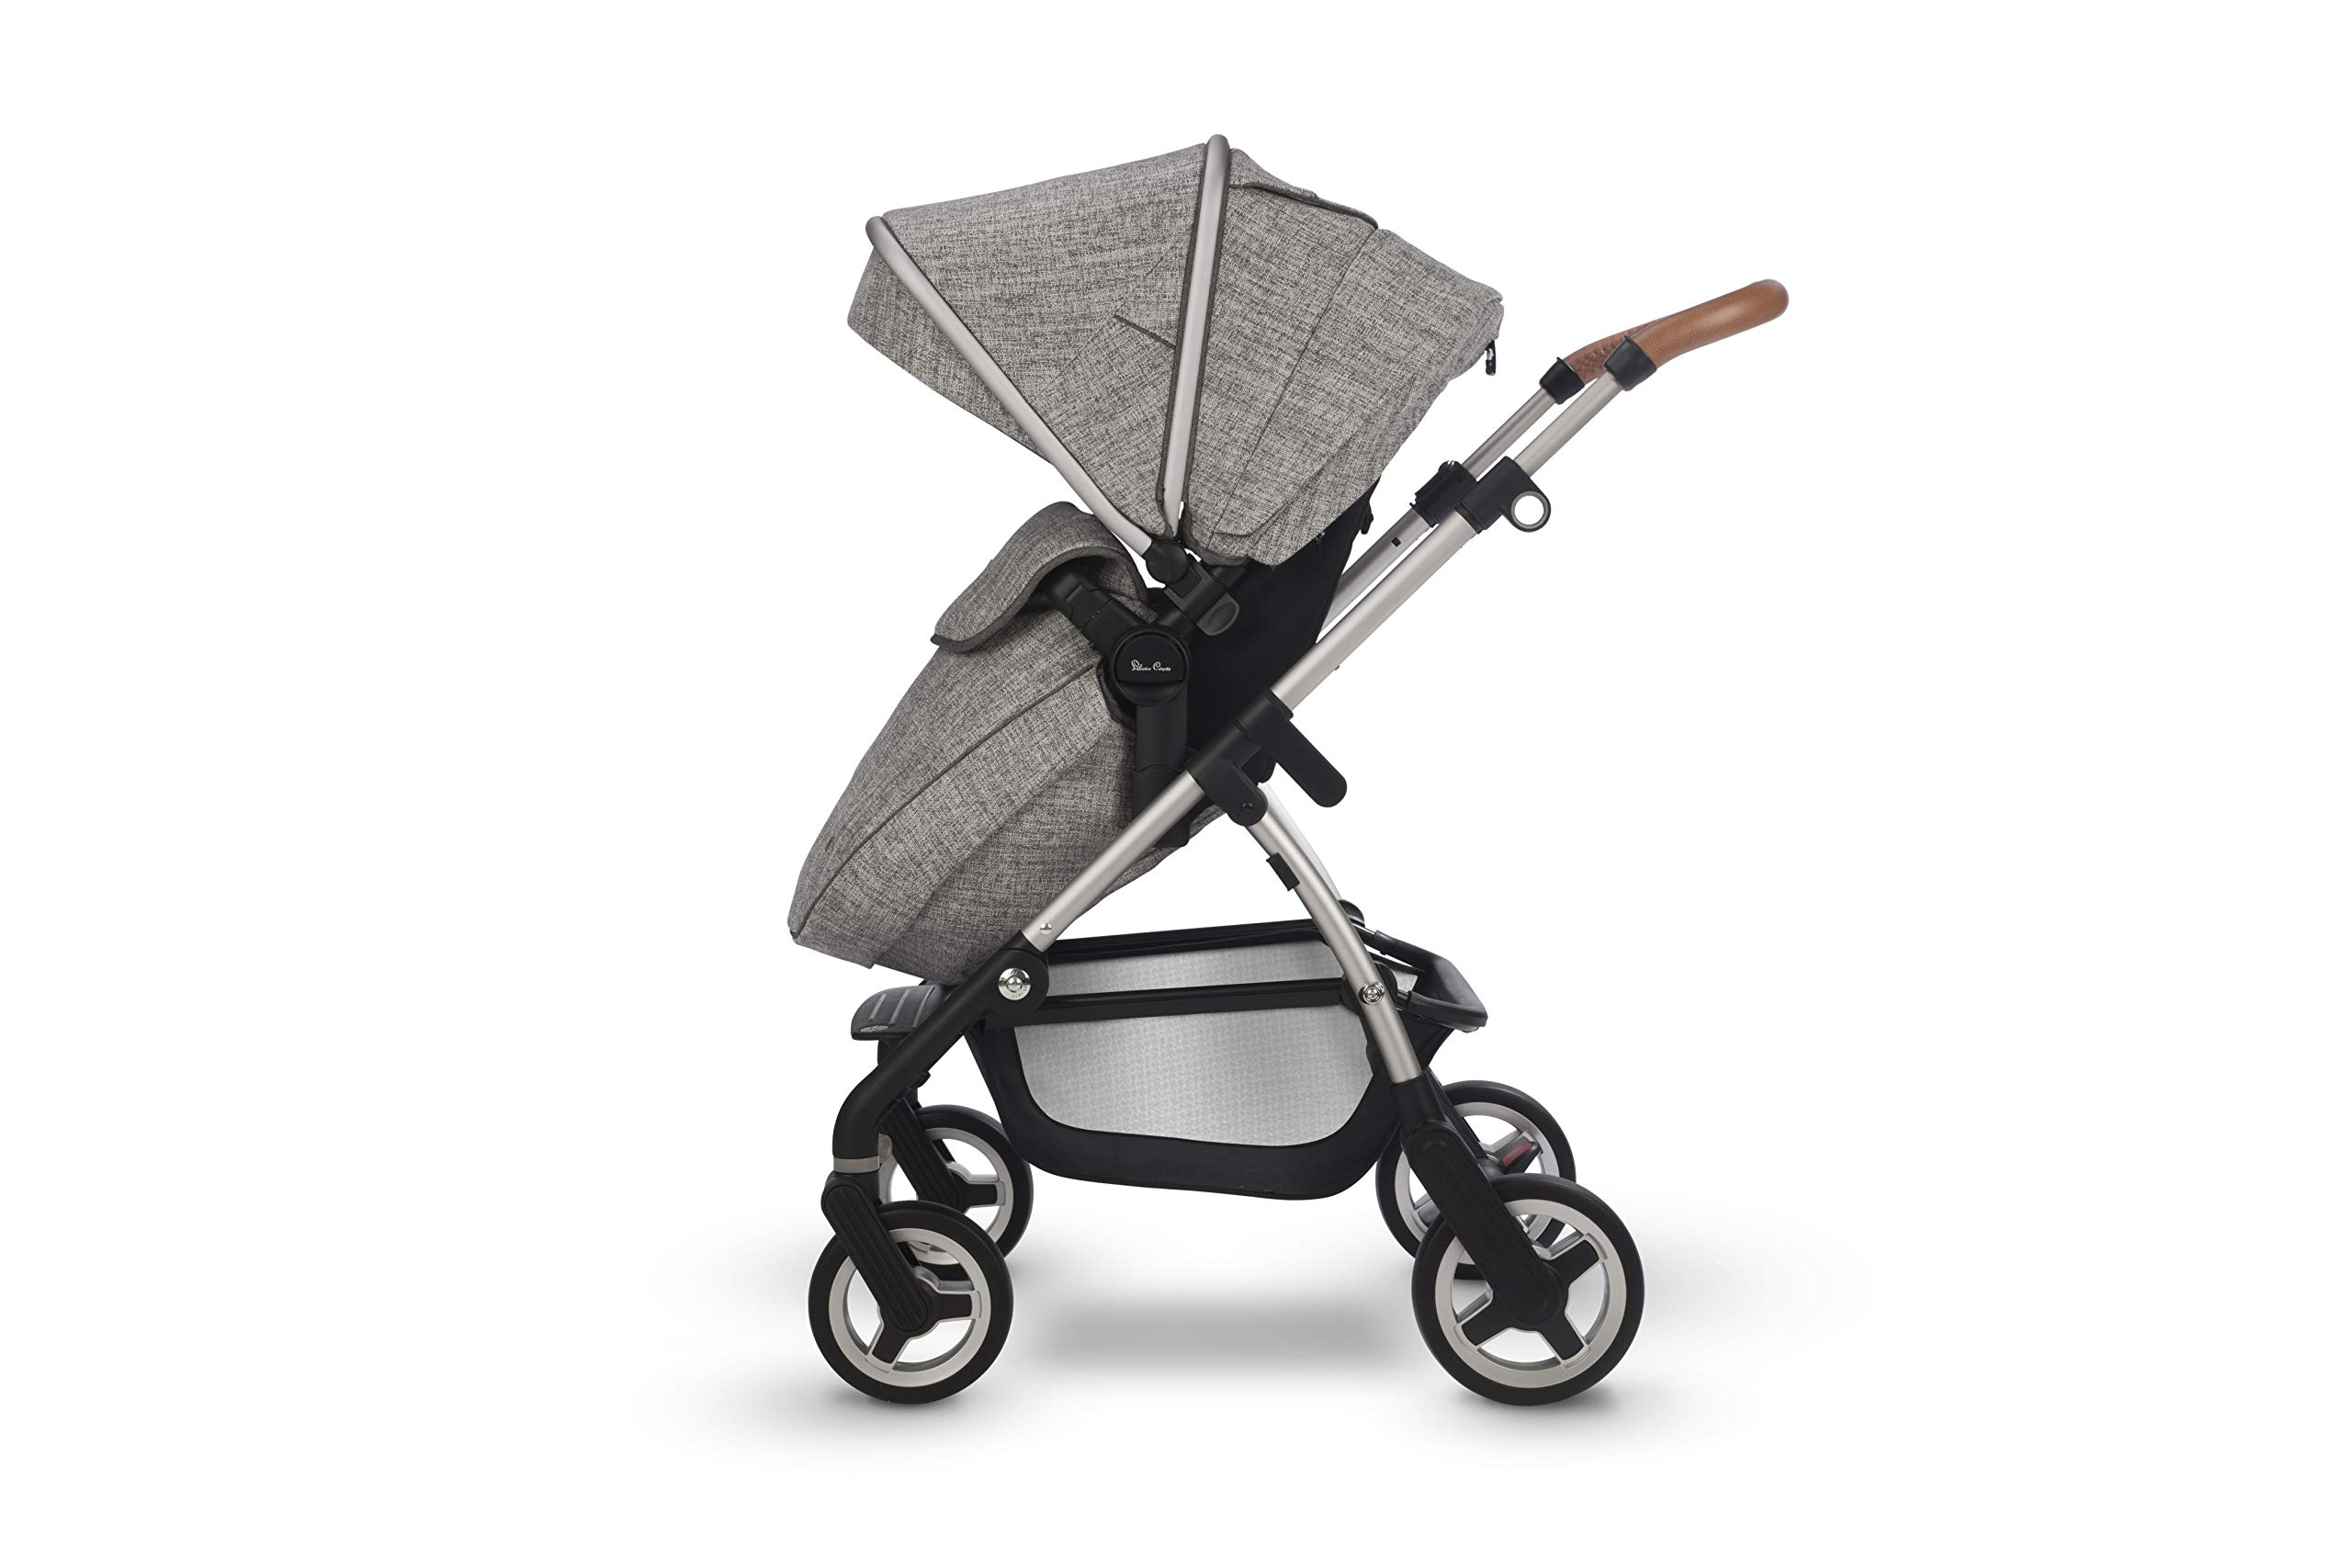 Silver Cross Wayfarer Camden Silver Cross Complete pram system that includes everything you need from birth to toddler Includes a lie-flat carrycot for your new born that is suitable for overnight sleeping Compact, lightweight and convenient, hardwearing and durable 3